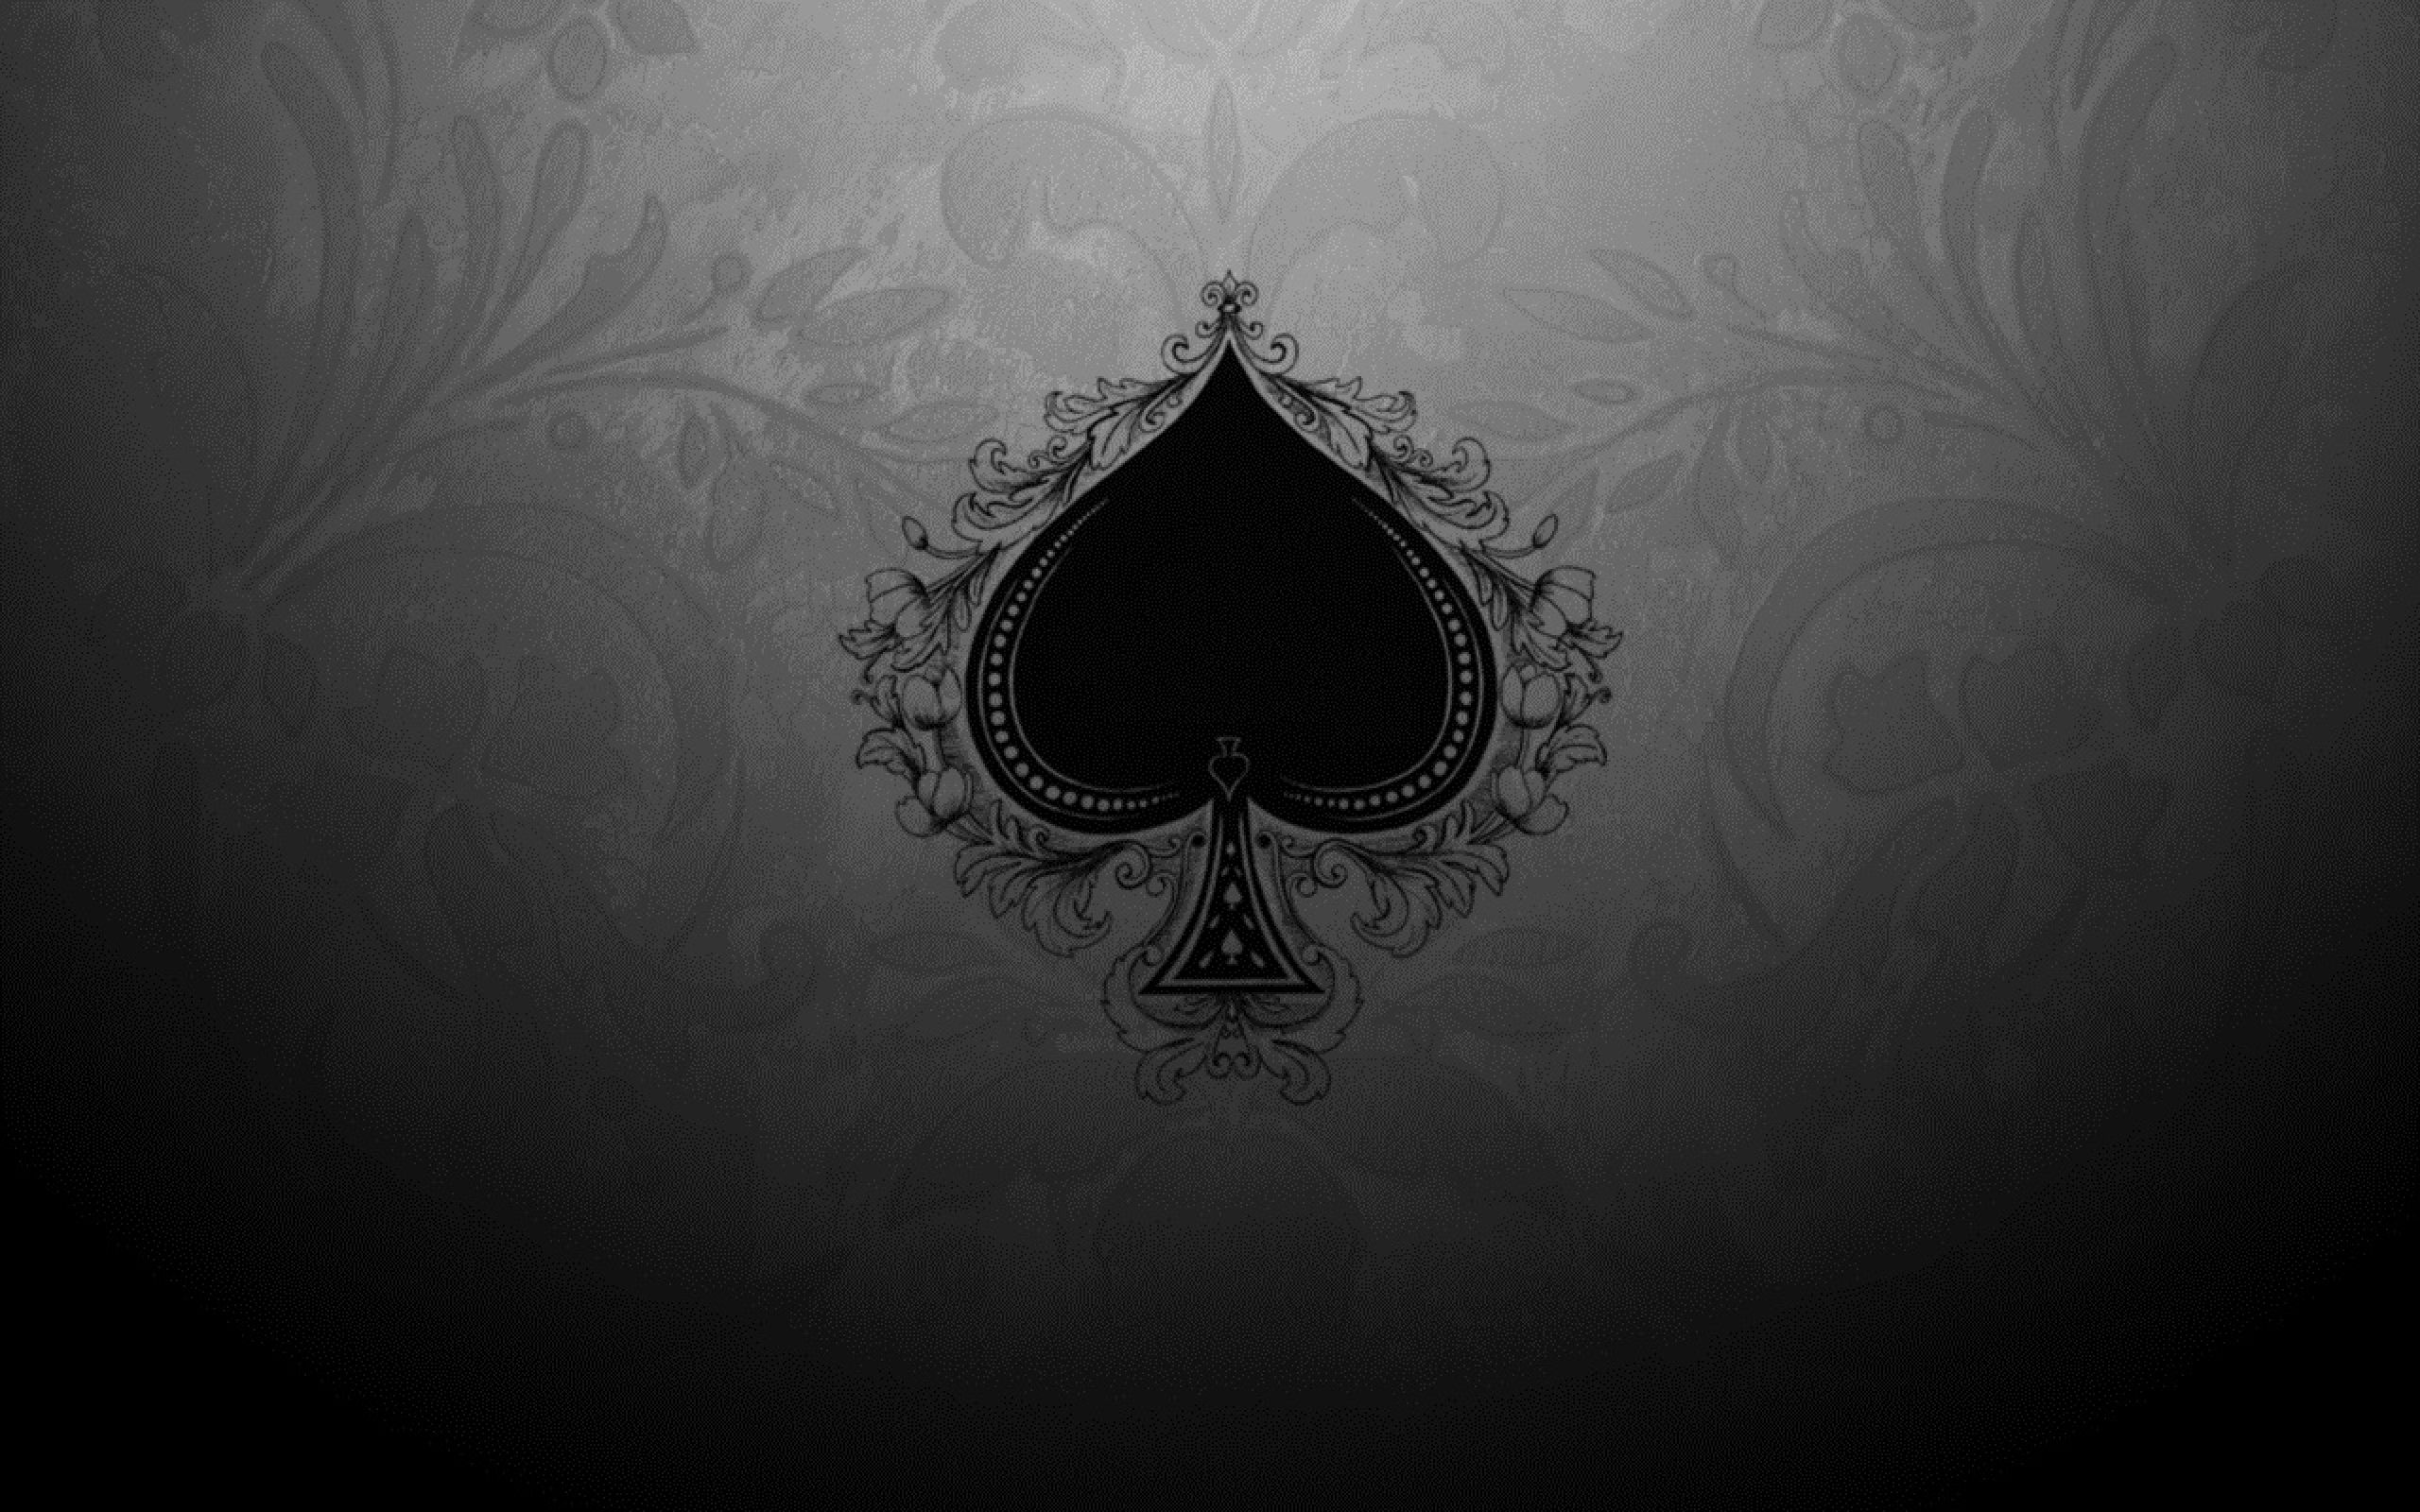 Aards quotes ace of spades images 1920x1200